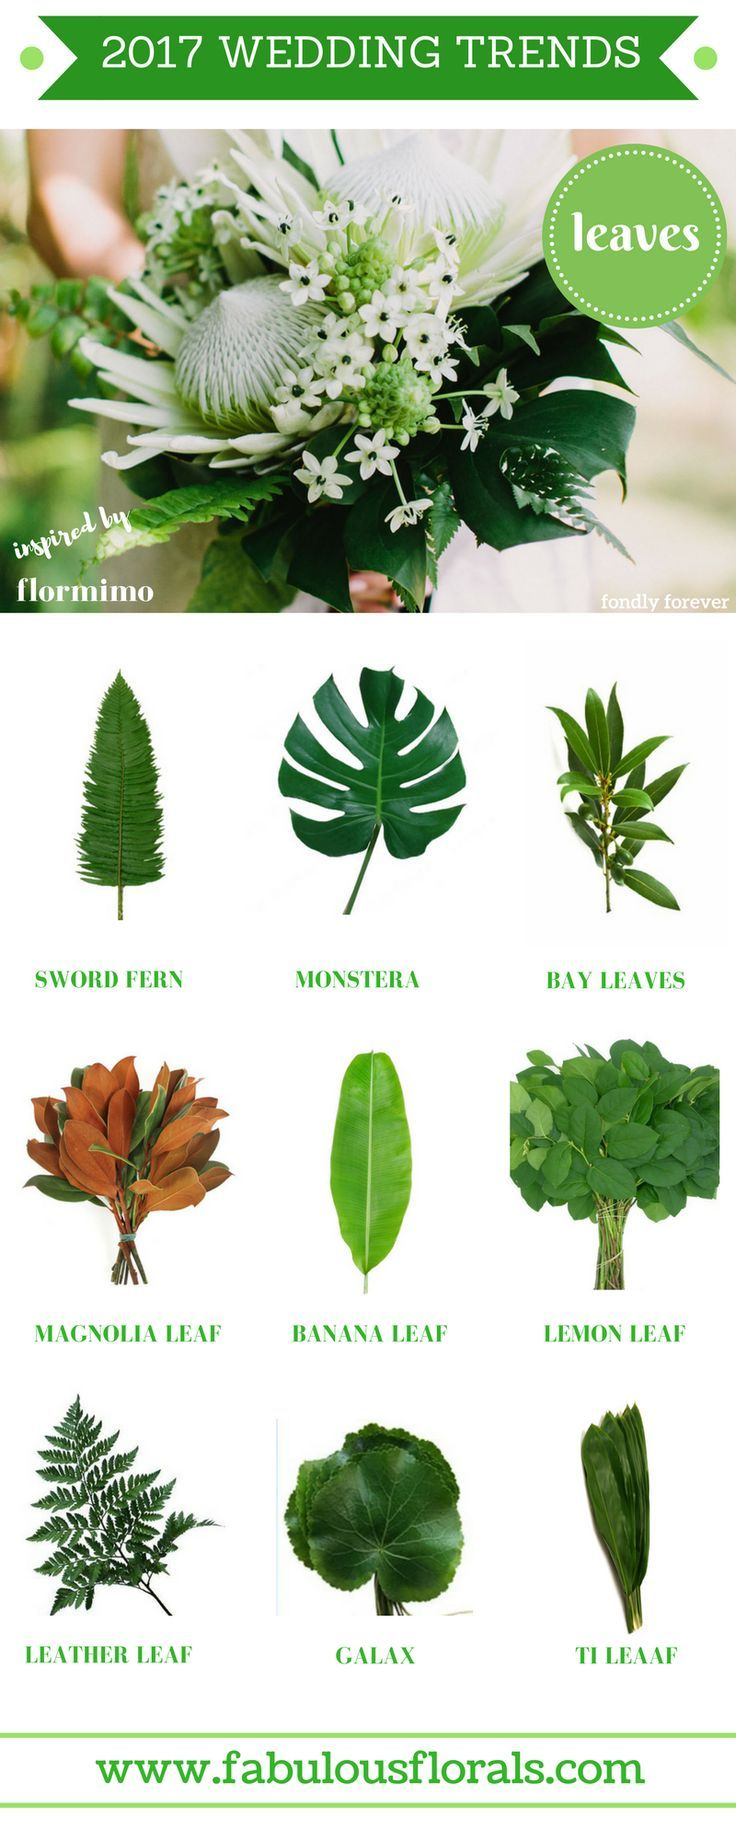 2017 wedding trends! LEAVES chart.  Your #1 source for wholesale DIY wedding flowers! #pantone2017 #diyflowers #weddingflowers #weddinggreenery #weddingtrends #greenery #leaves #bouquet